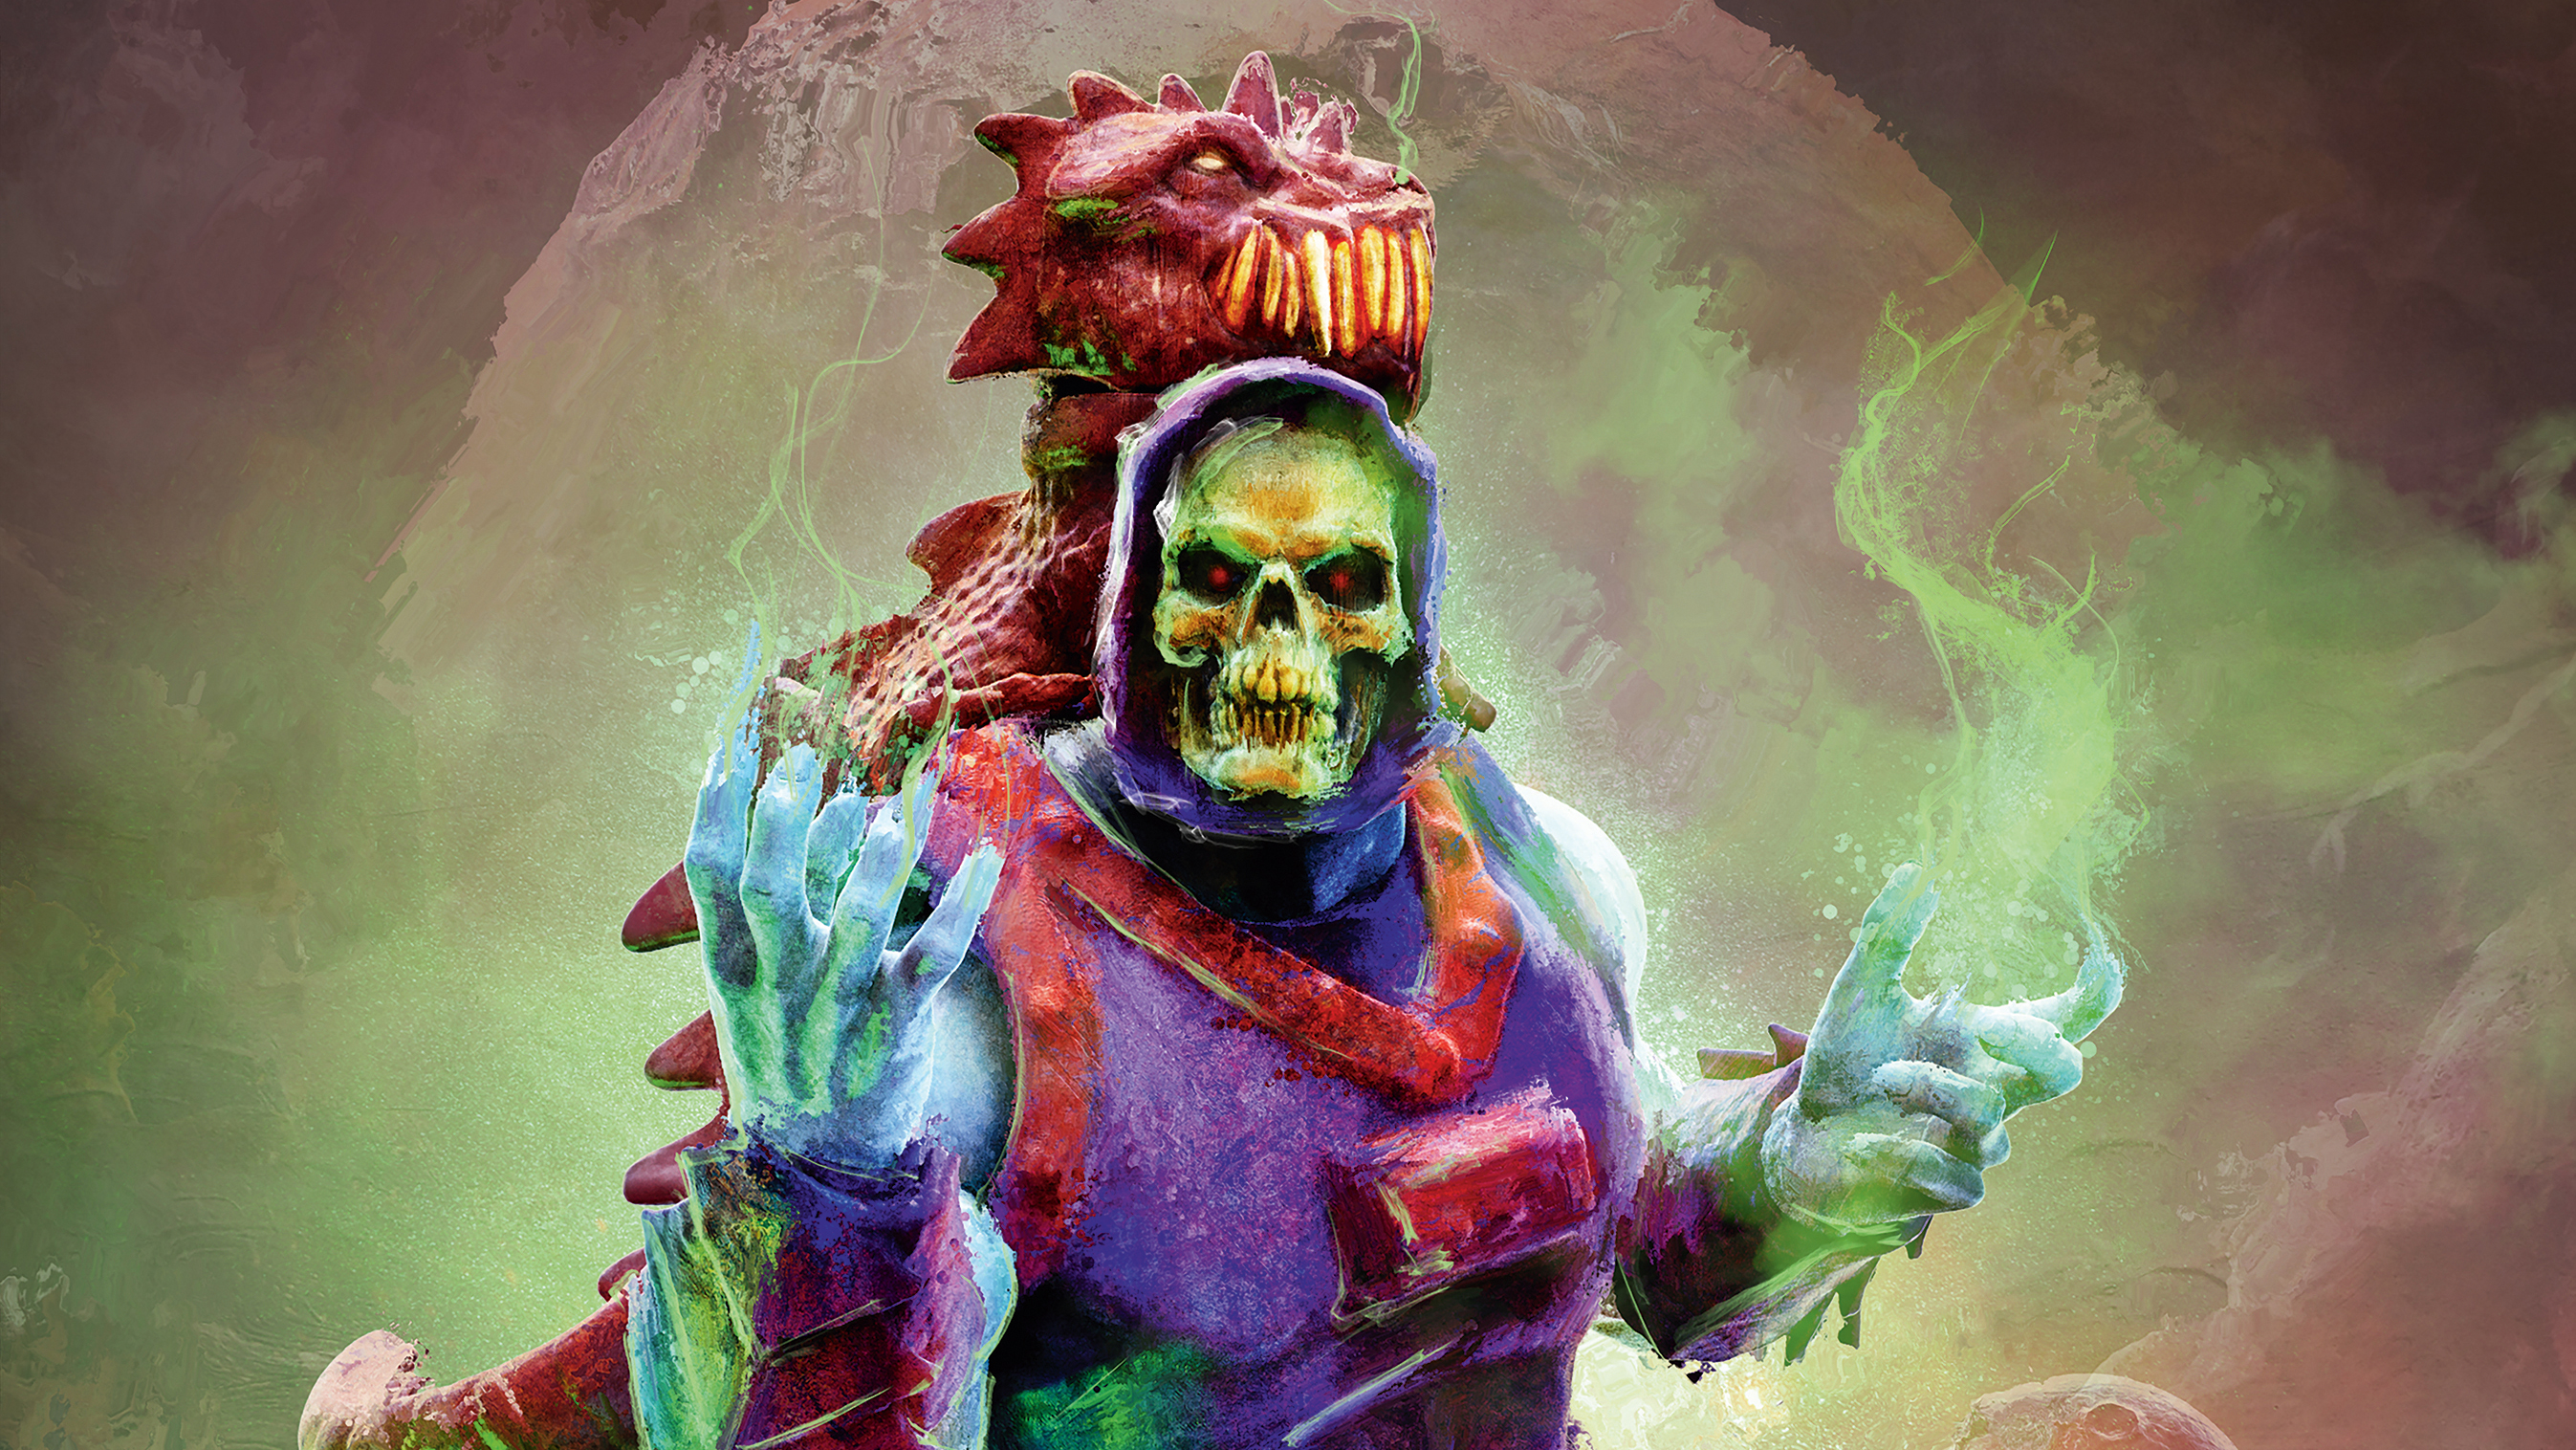 How to create vintage art from He-Man 3D scans